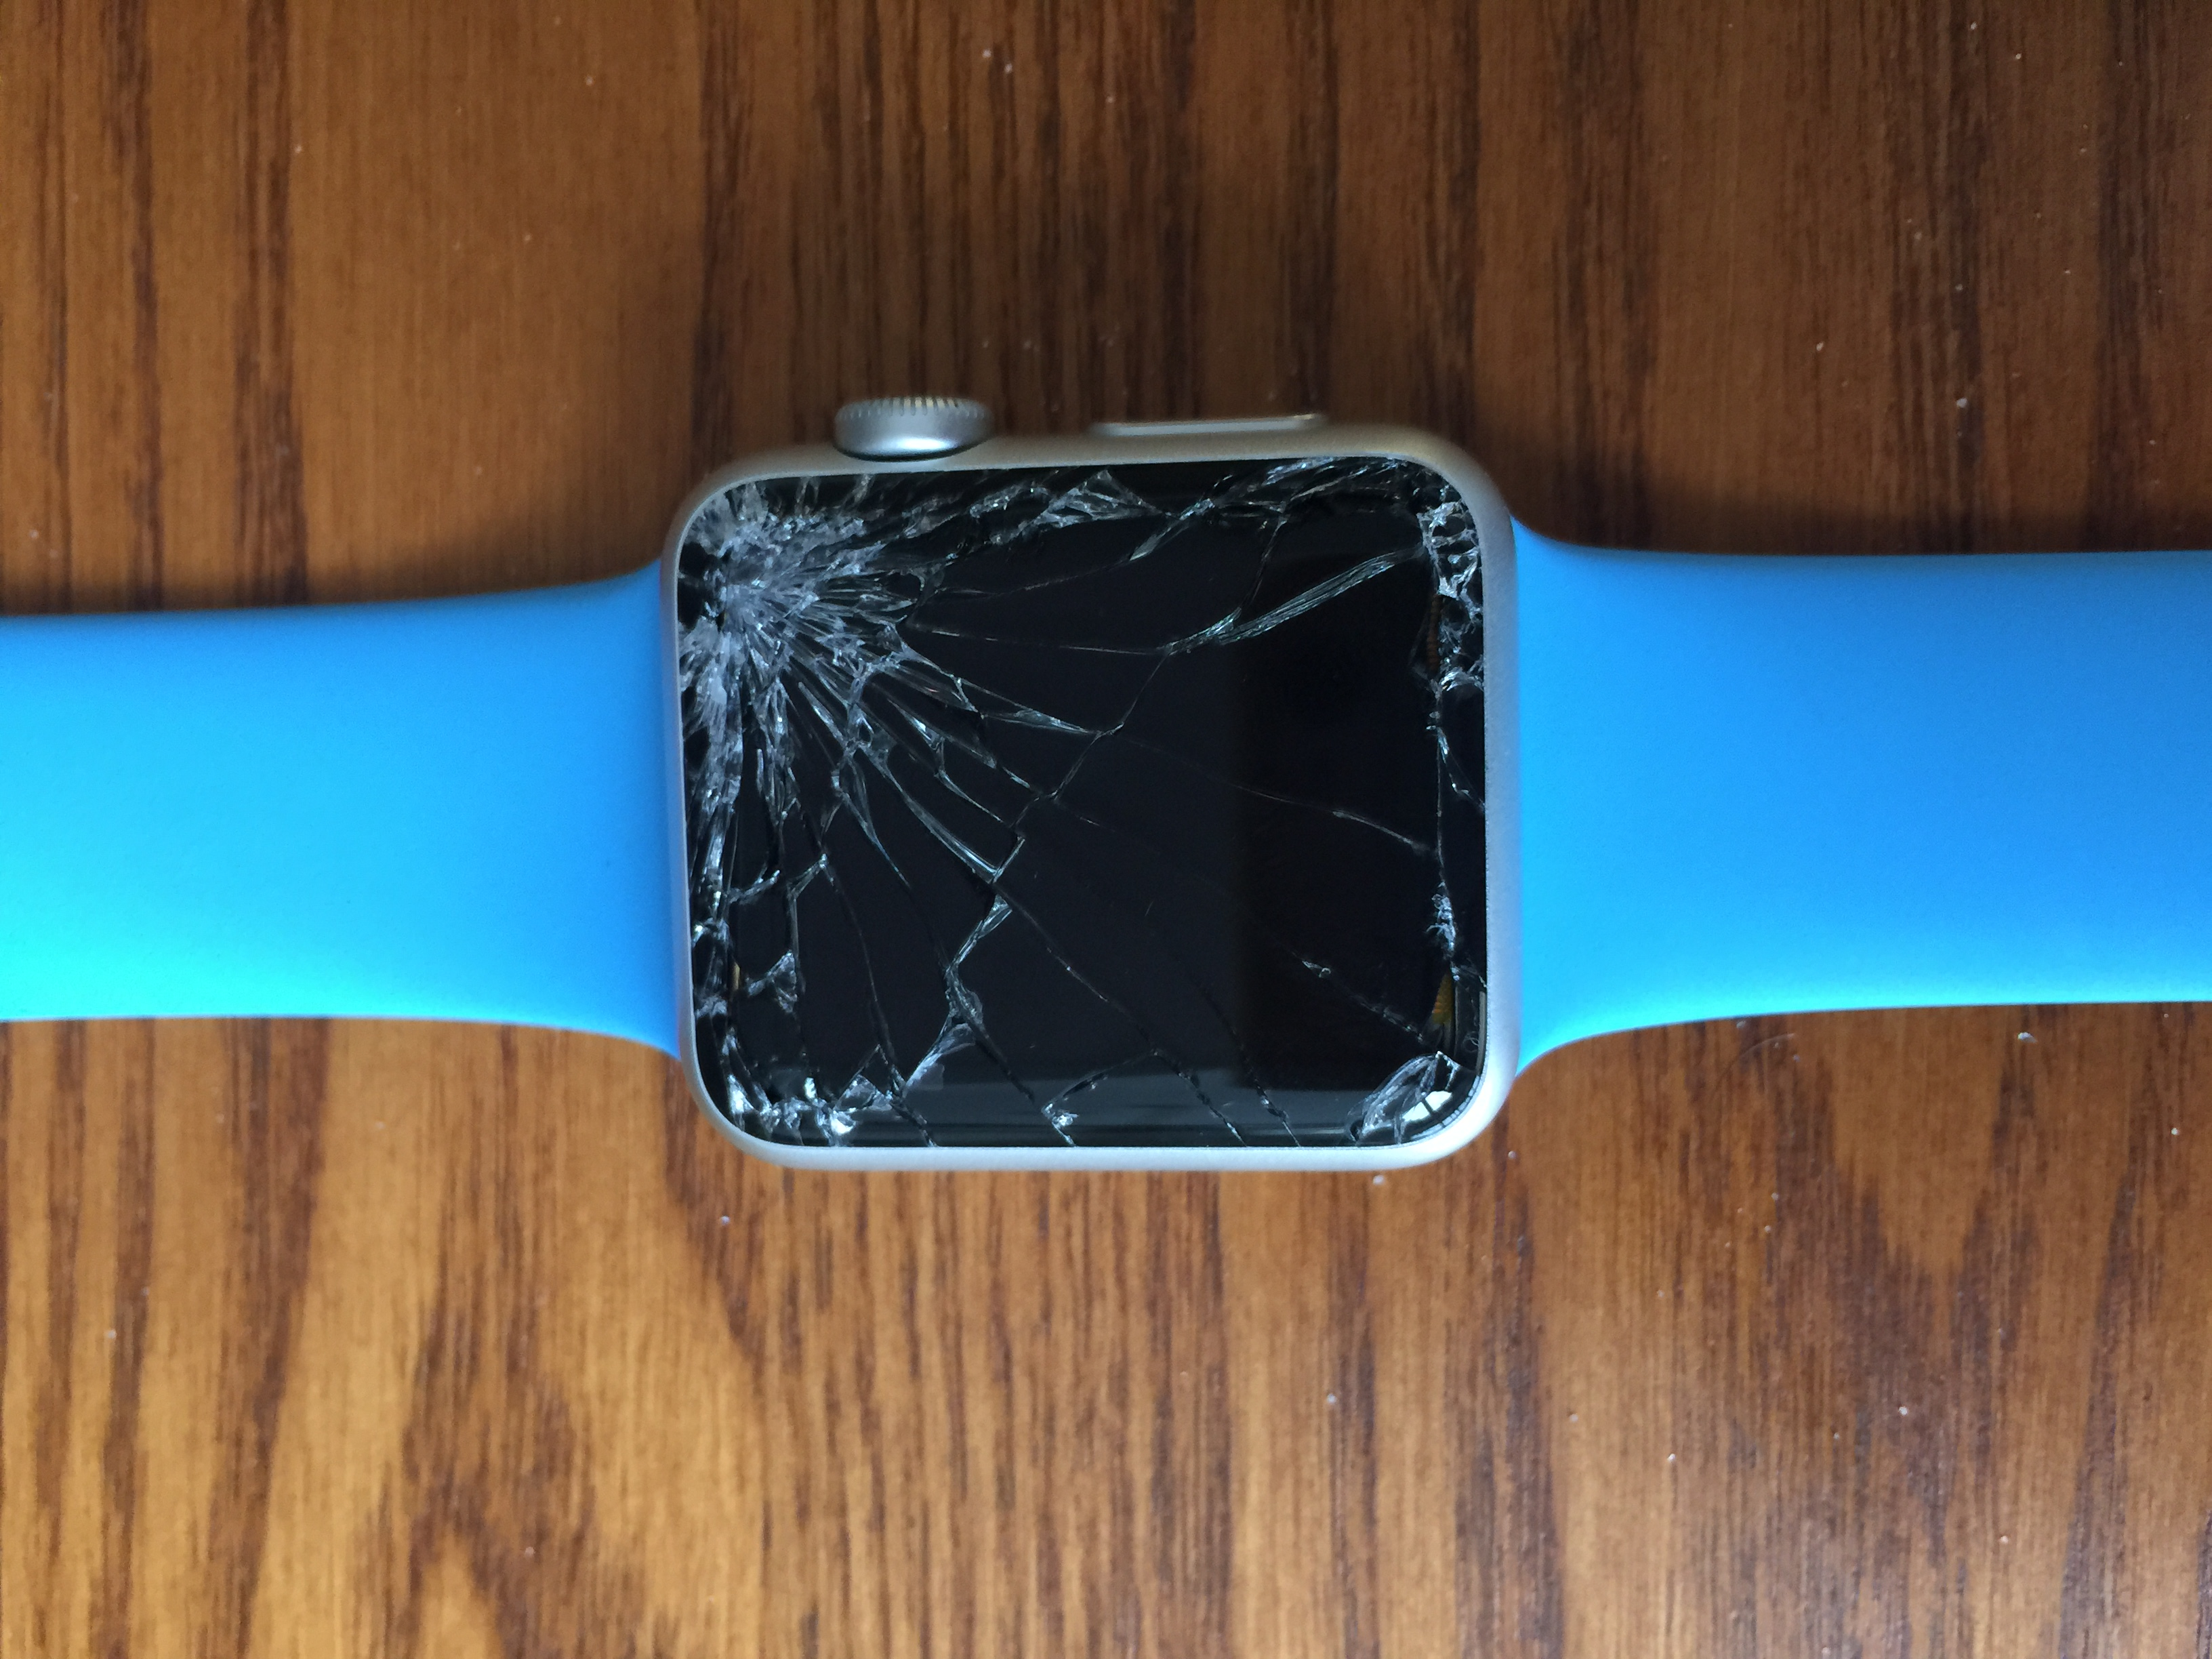 Normal Use Shatters Apple Watch Sport Smart 42mm Shattered